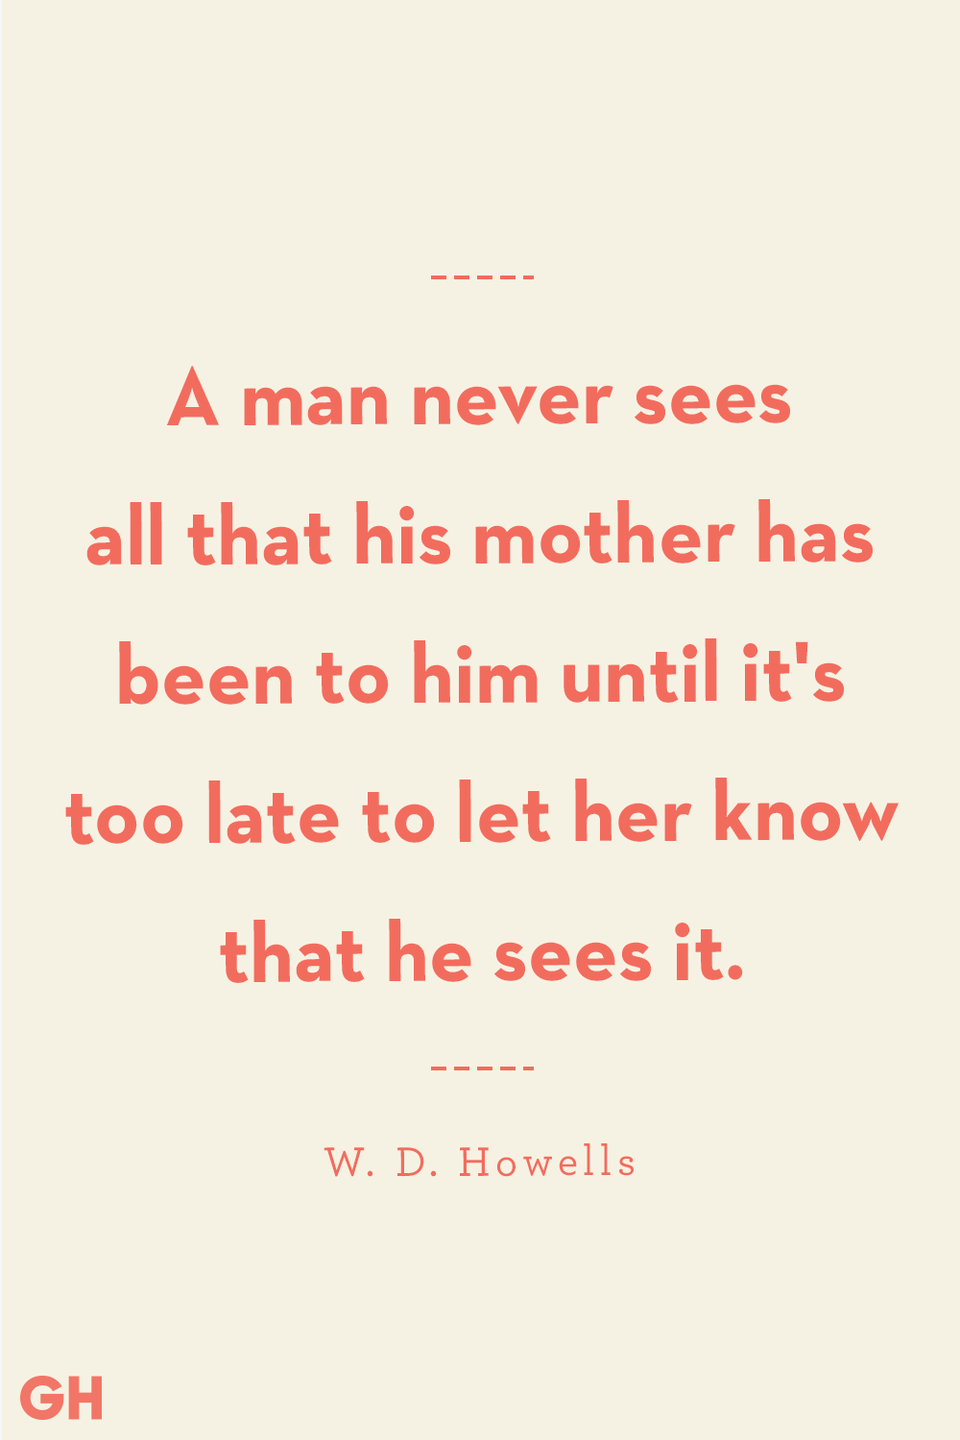 <p>A man never sees all that his mother has been to him until it's too late to let her know that he sees it.</p>